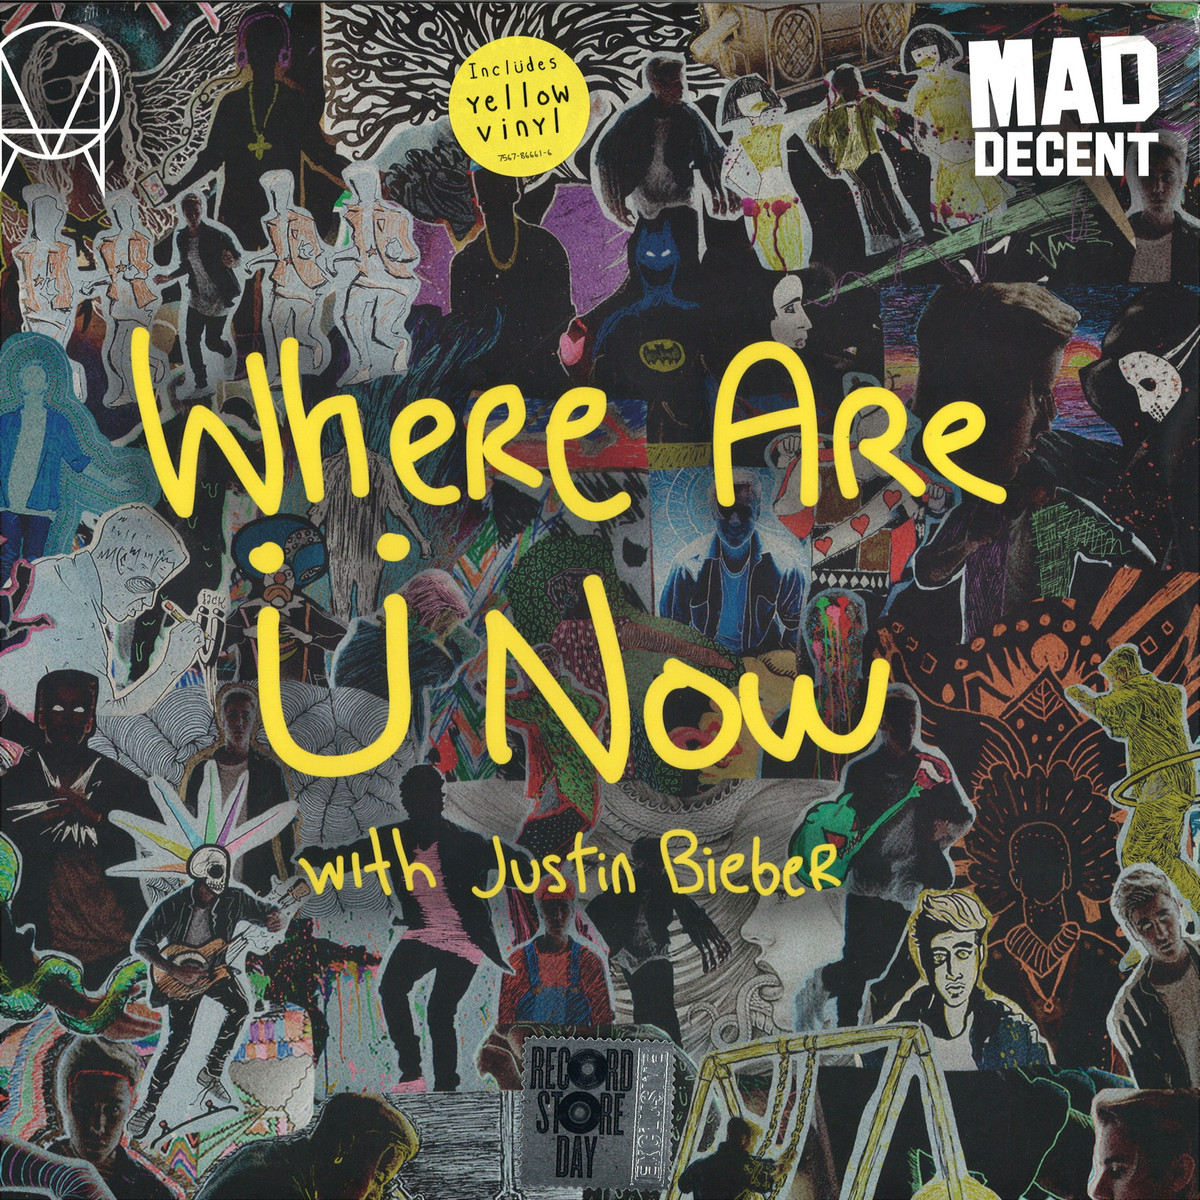 Skrillex & Diplo Feat. Justin Bieber - Where Are You Now